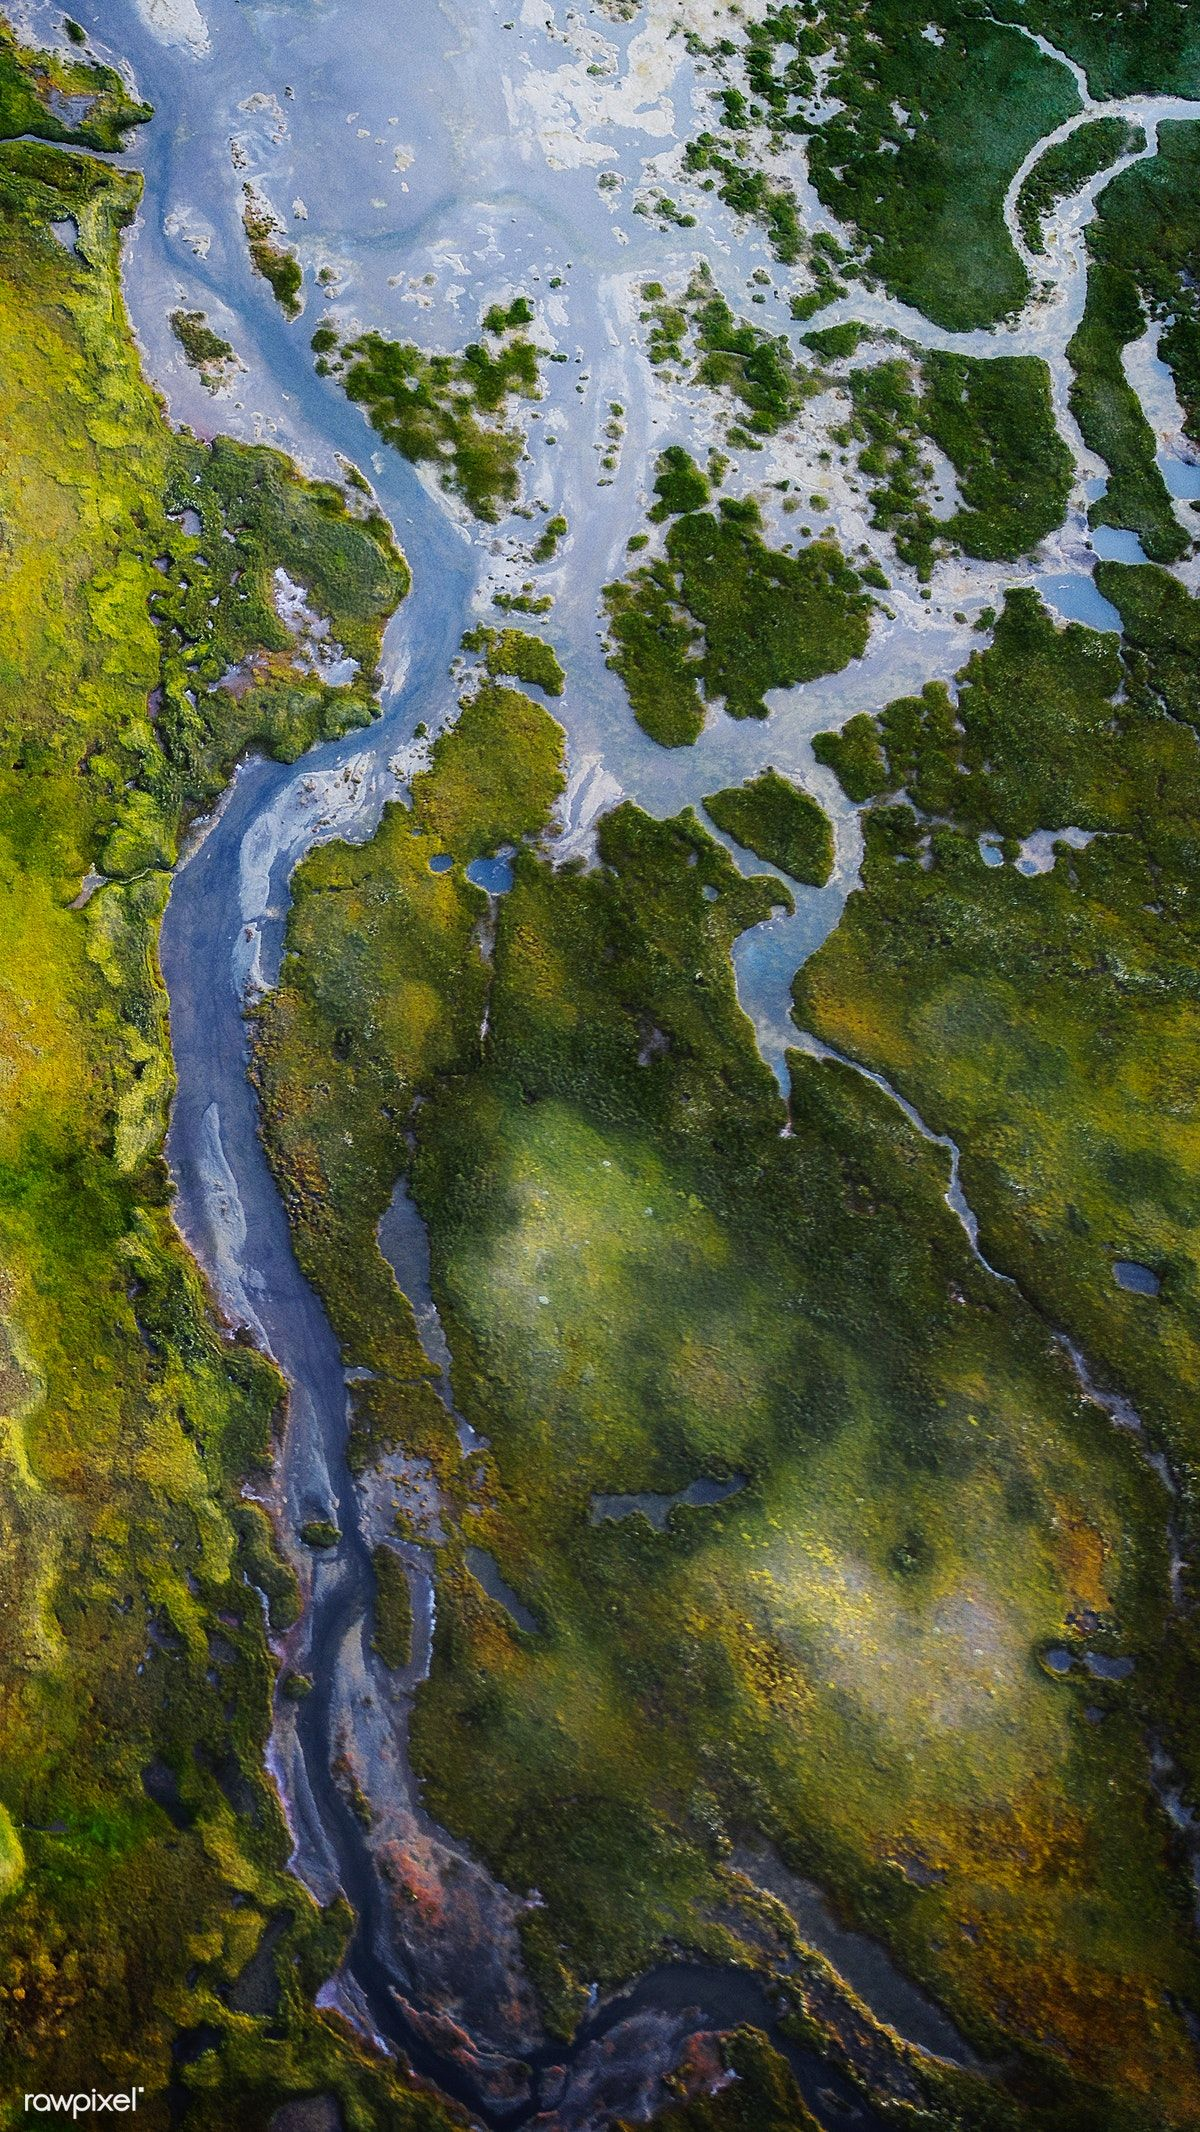 Download premium image of River structure in Iceland drone shot 1234792